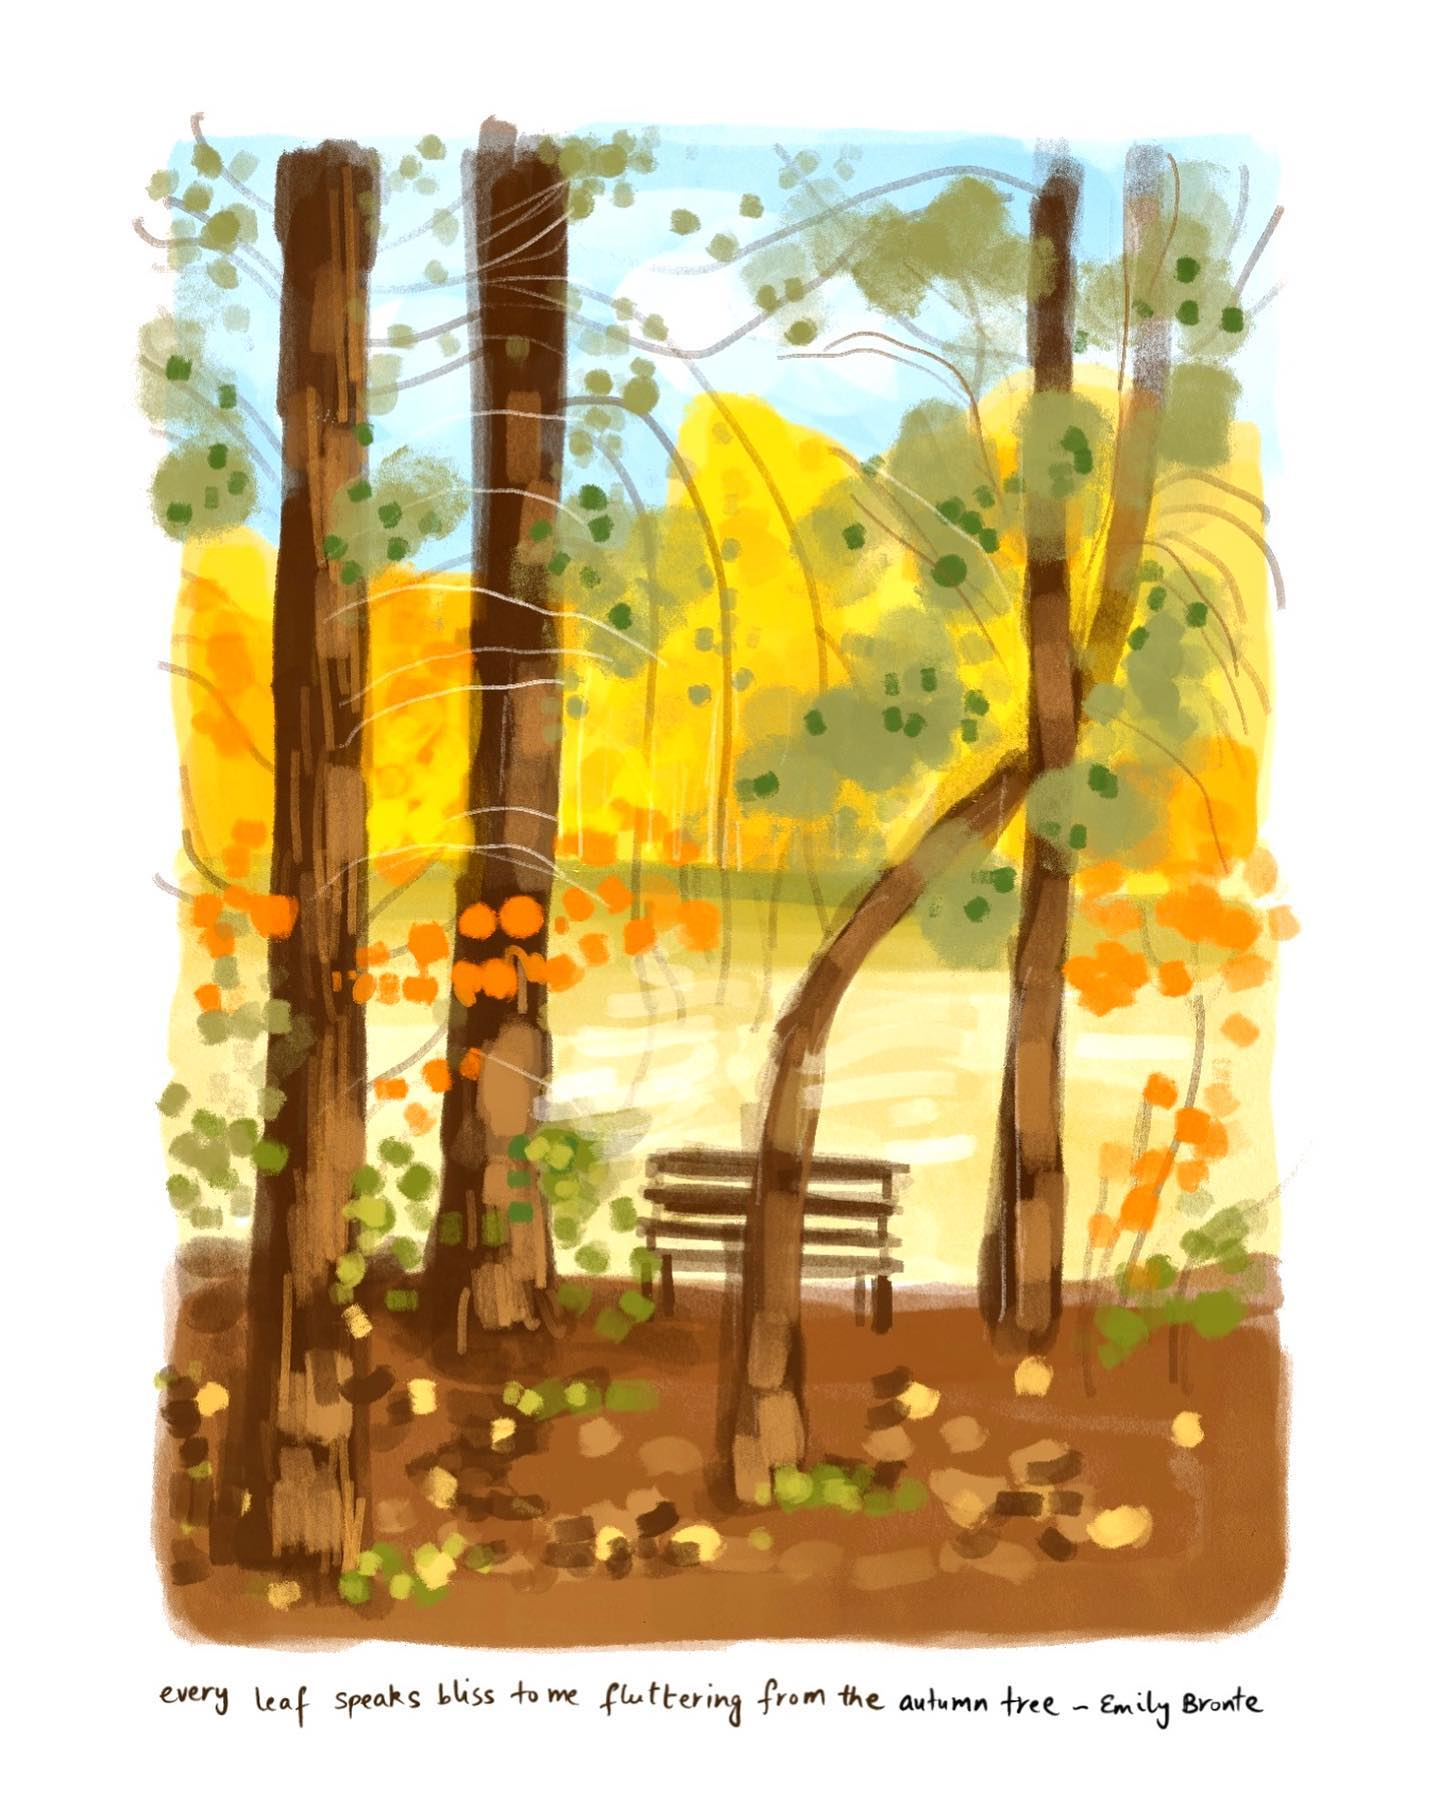 Every leaf speaks bliss to me fluttering from the autumn tree ~ Emily Bronte  I can stand and savor the autumn vibrance and sunshine for hours. A quick abstraction of one such blissful conversation...